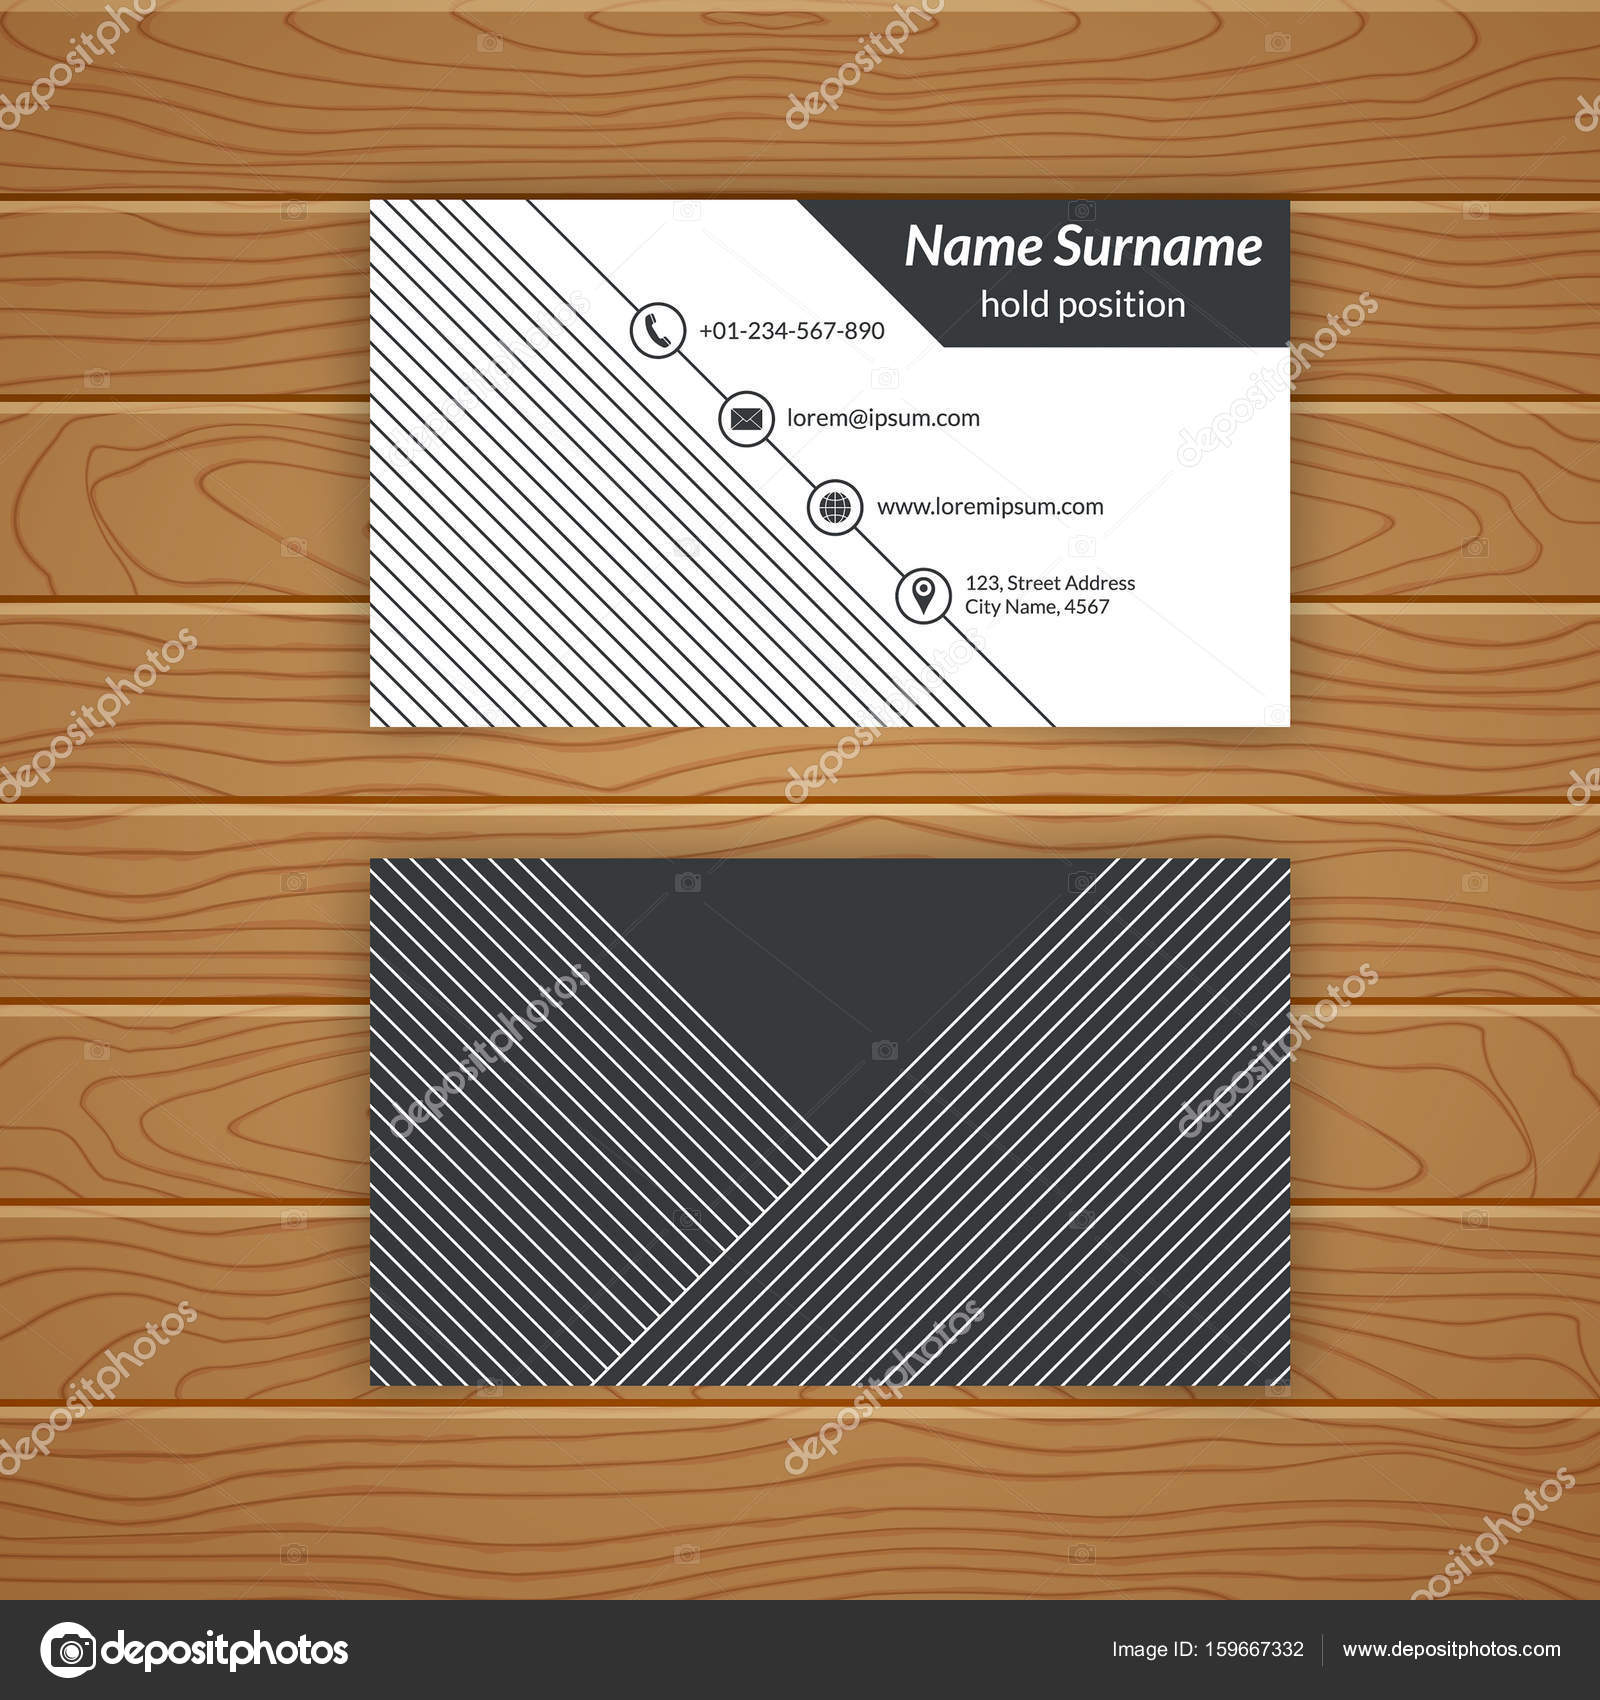 Business card blank template stock vector baretsky 159667332 business card blank template with textured background from thin diagonal lines minimal elegant vector design vector by baretsky accmission Gallery